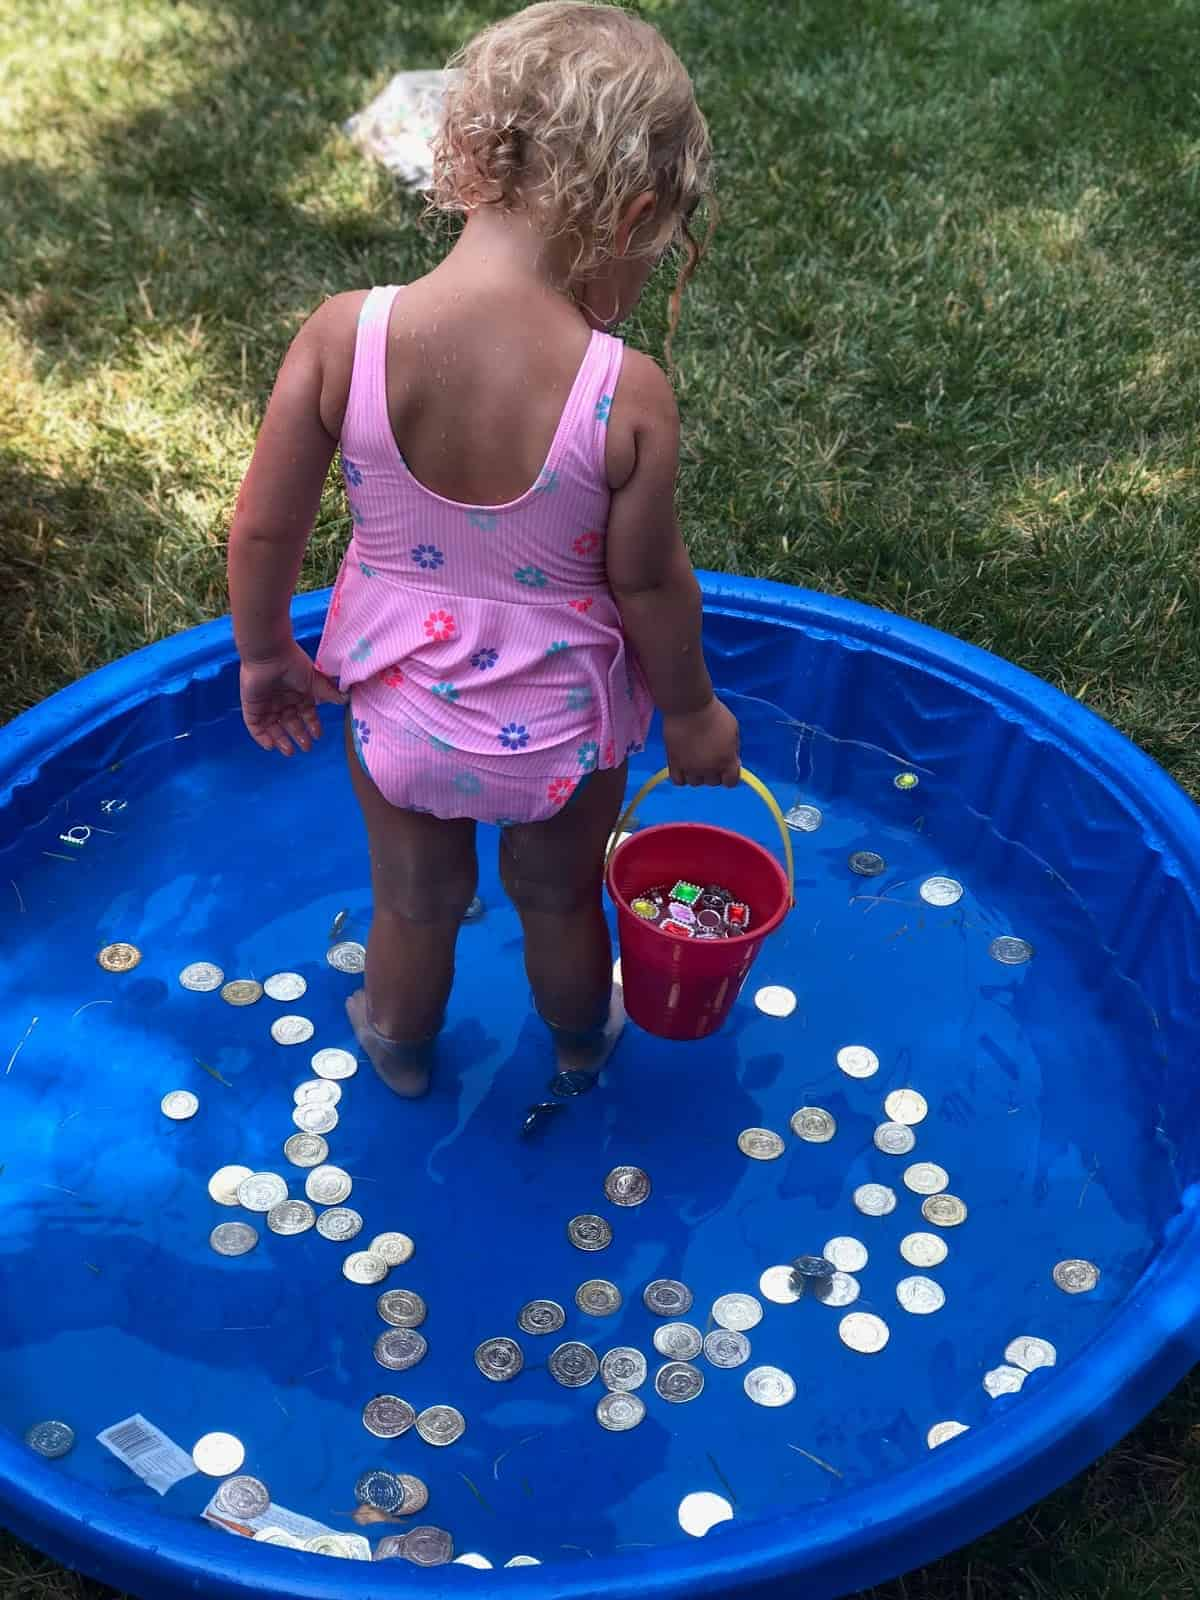 hunt for gold coins in a baby pool